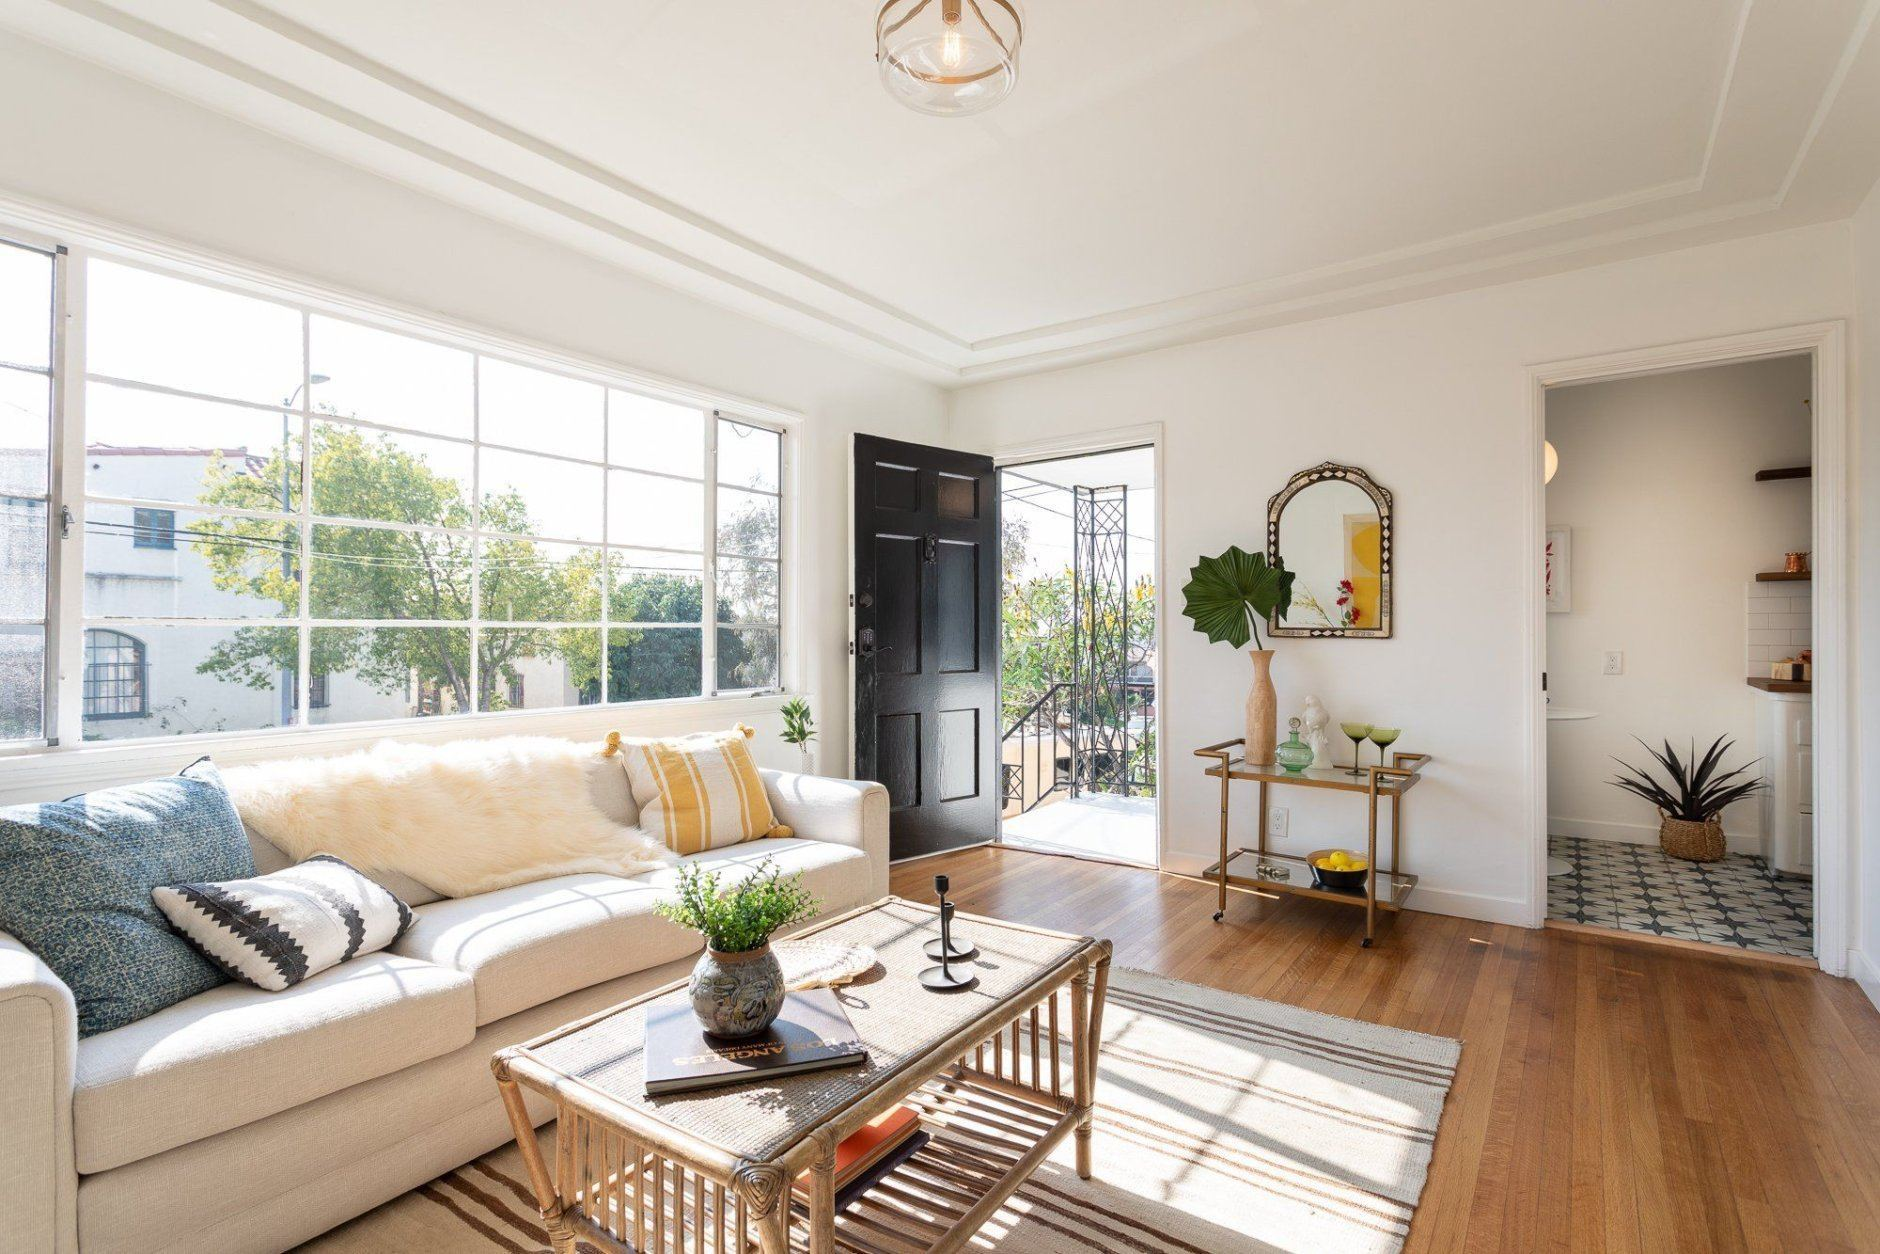 This one-bedroom between Silver Lake and East Hollywood sold as a tenancy in common for $430,000.